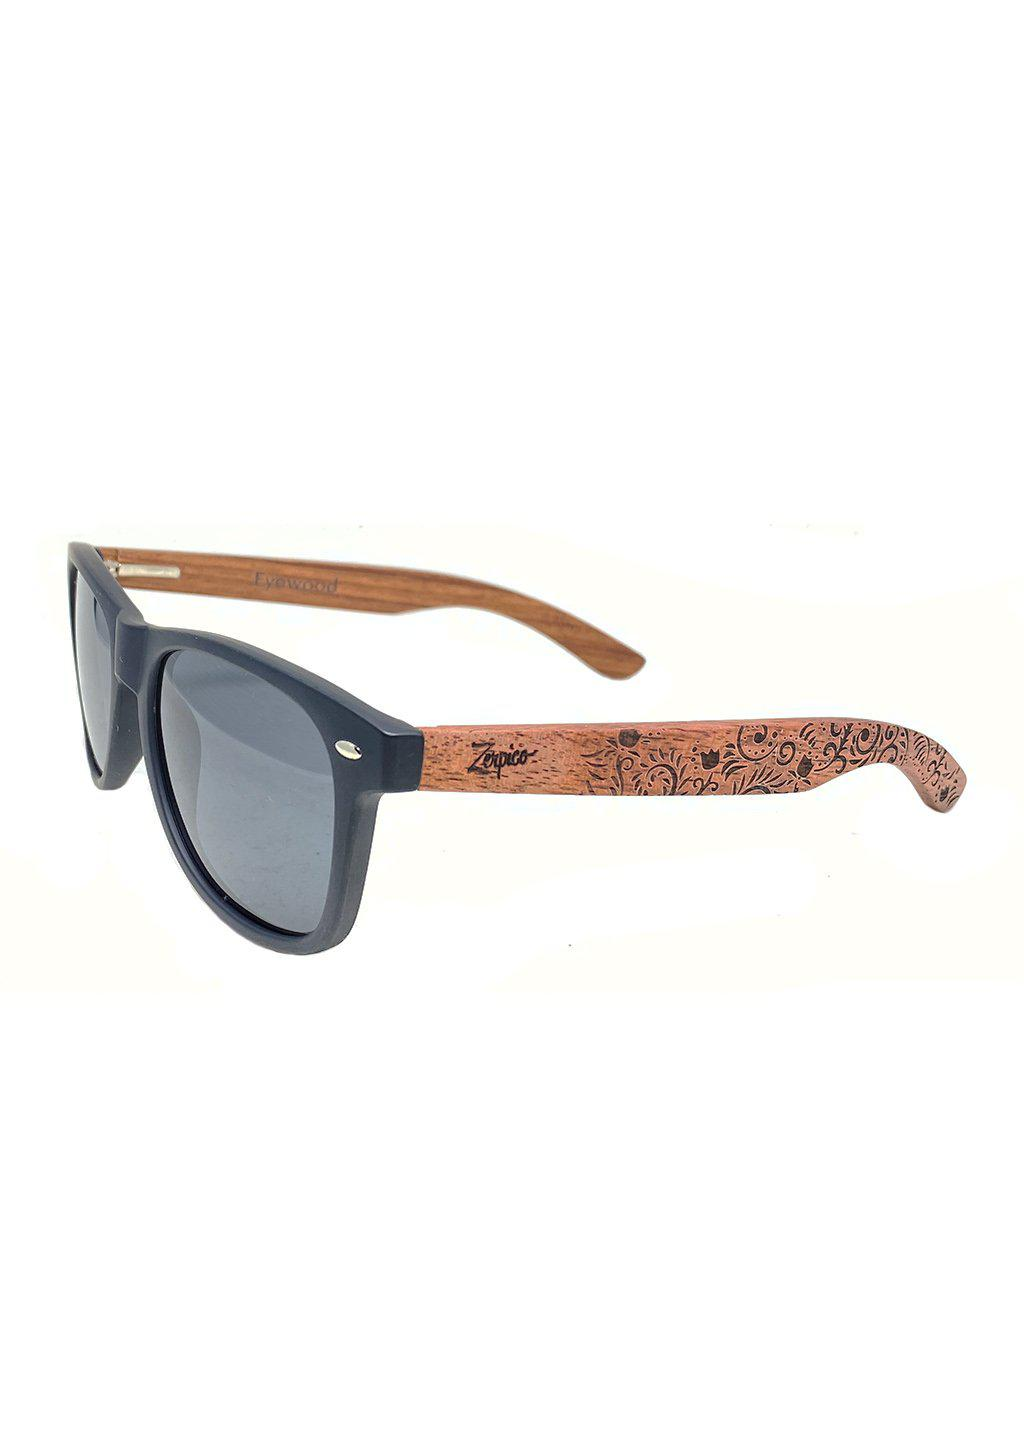 Engraved wooden sunglasses handmade with floral pattern from Zerpico.